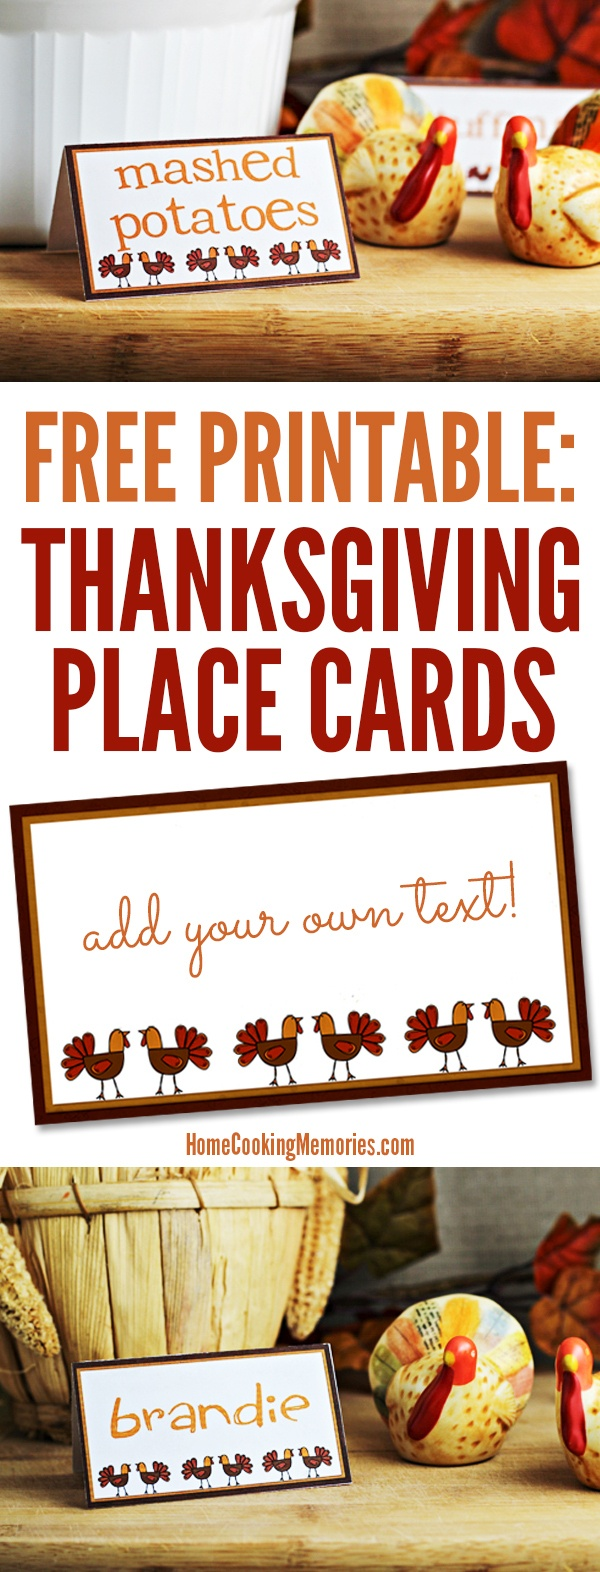 Free Printables: Thanksgiving Place Cards - Home Cooking Memories - Free Printable Thanksgiving Place Cards